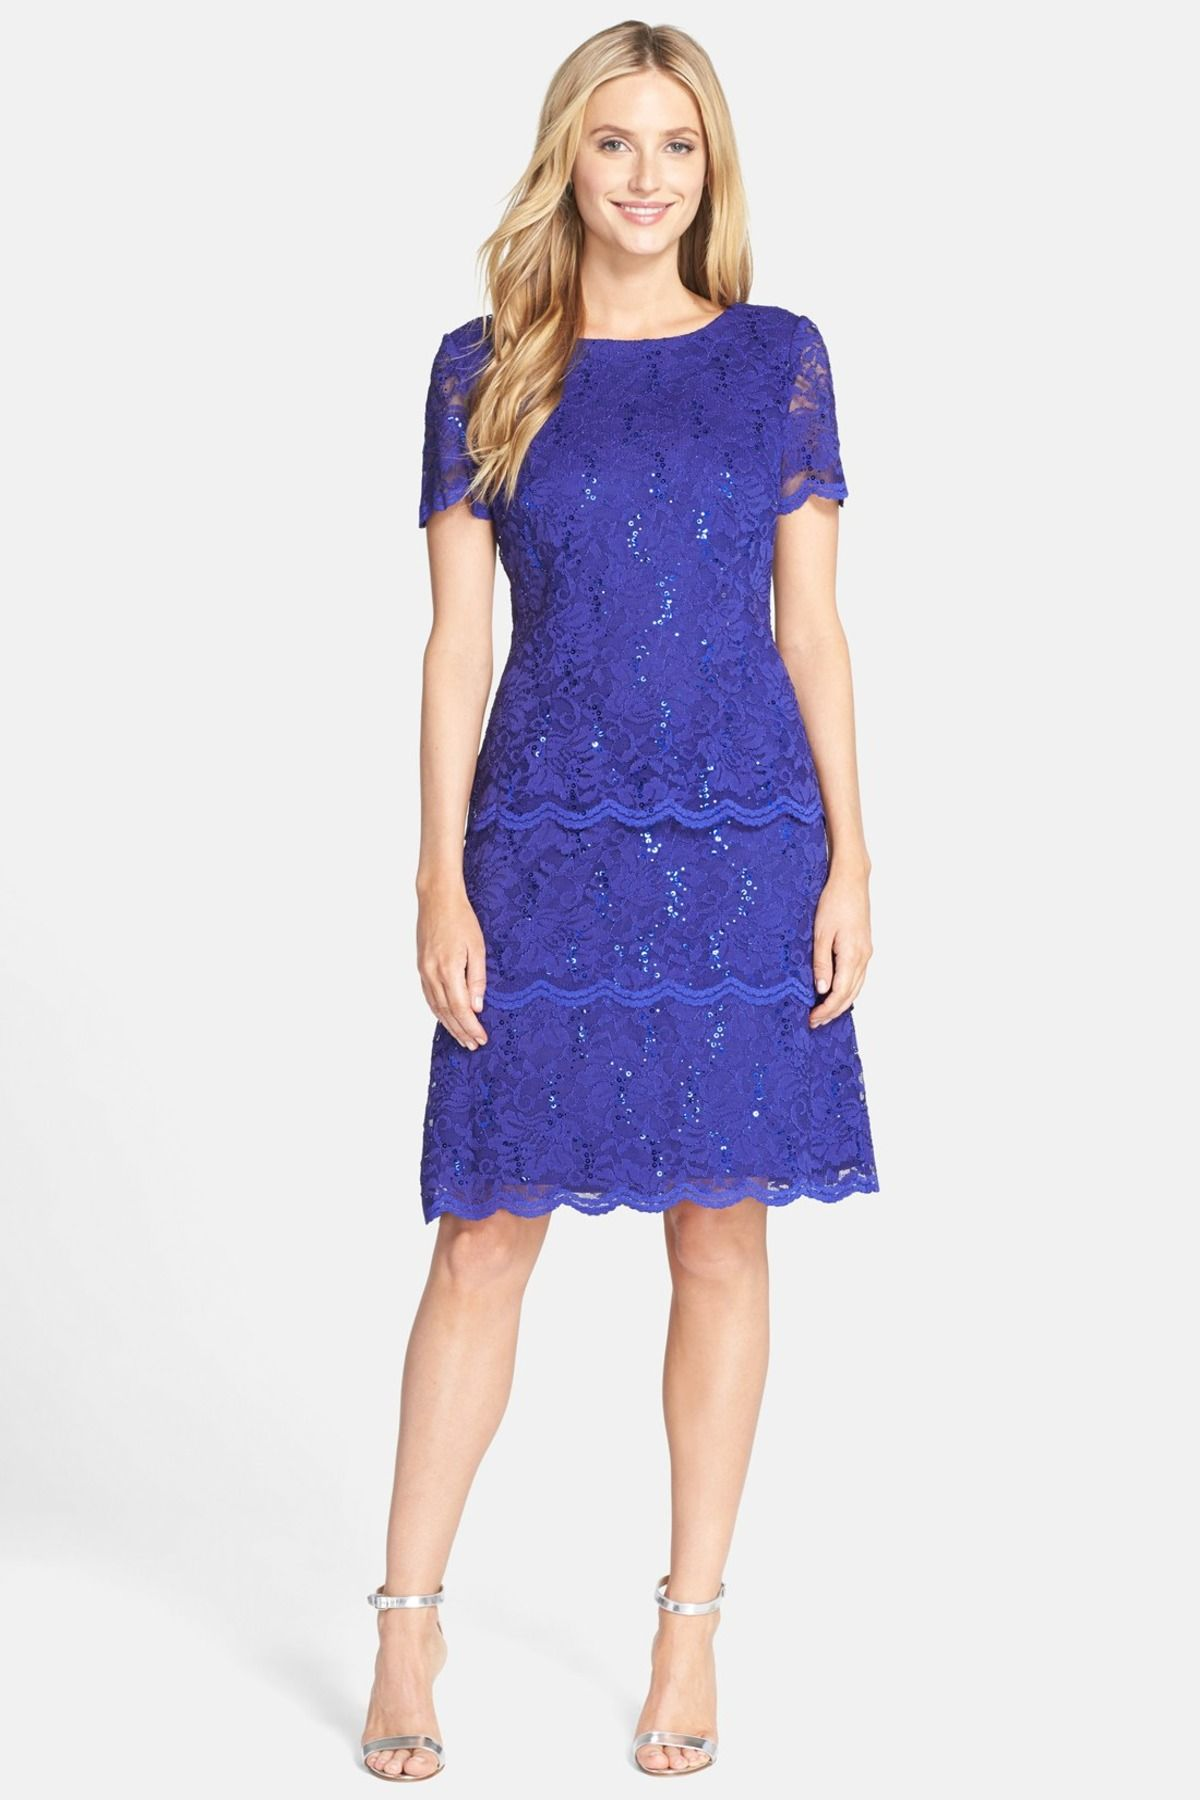 6e5cb67e3df8 Alex Evenings | Sequin Lace Shift Dress | Nordstrom Rack Sponsored by  Nordstrom Rack.